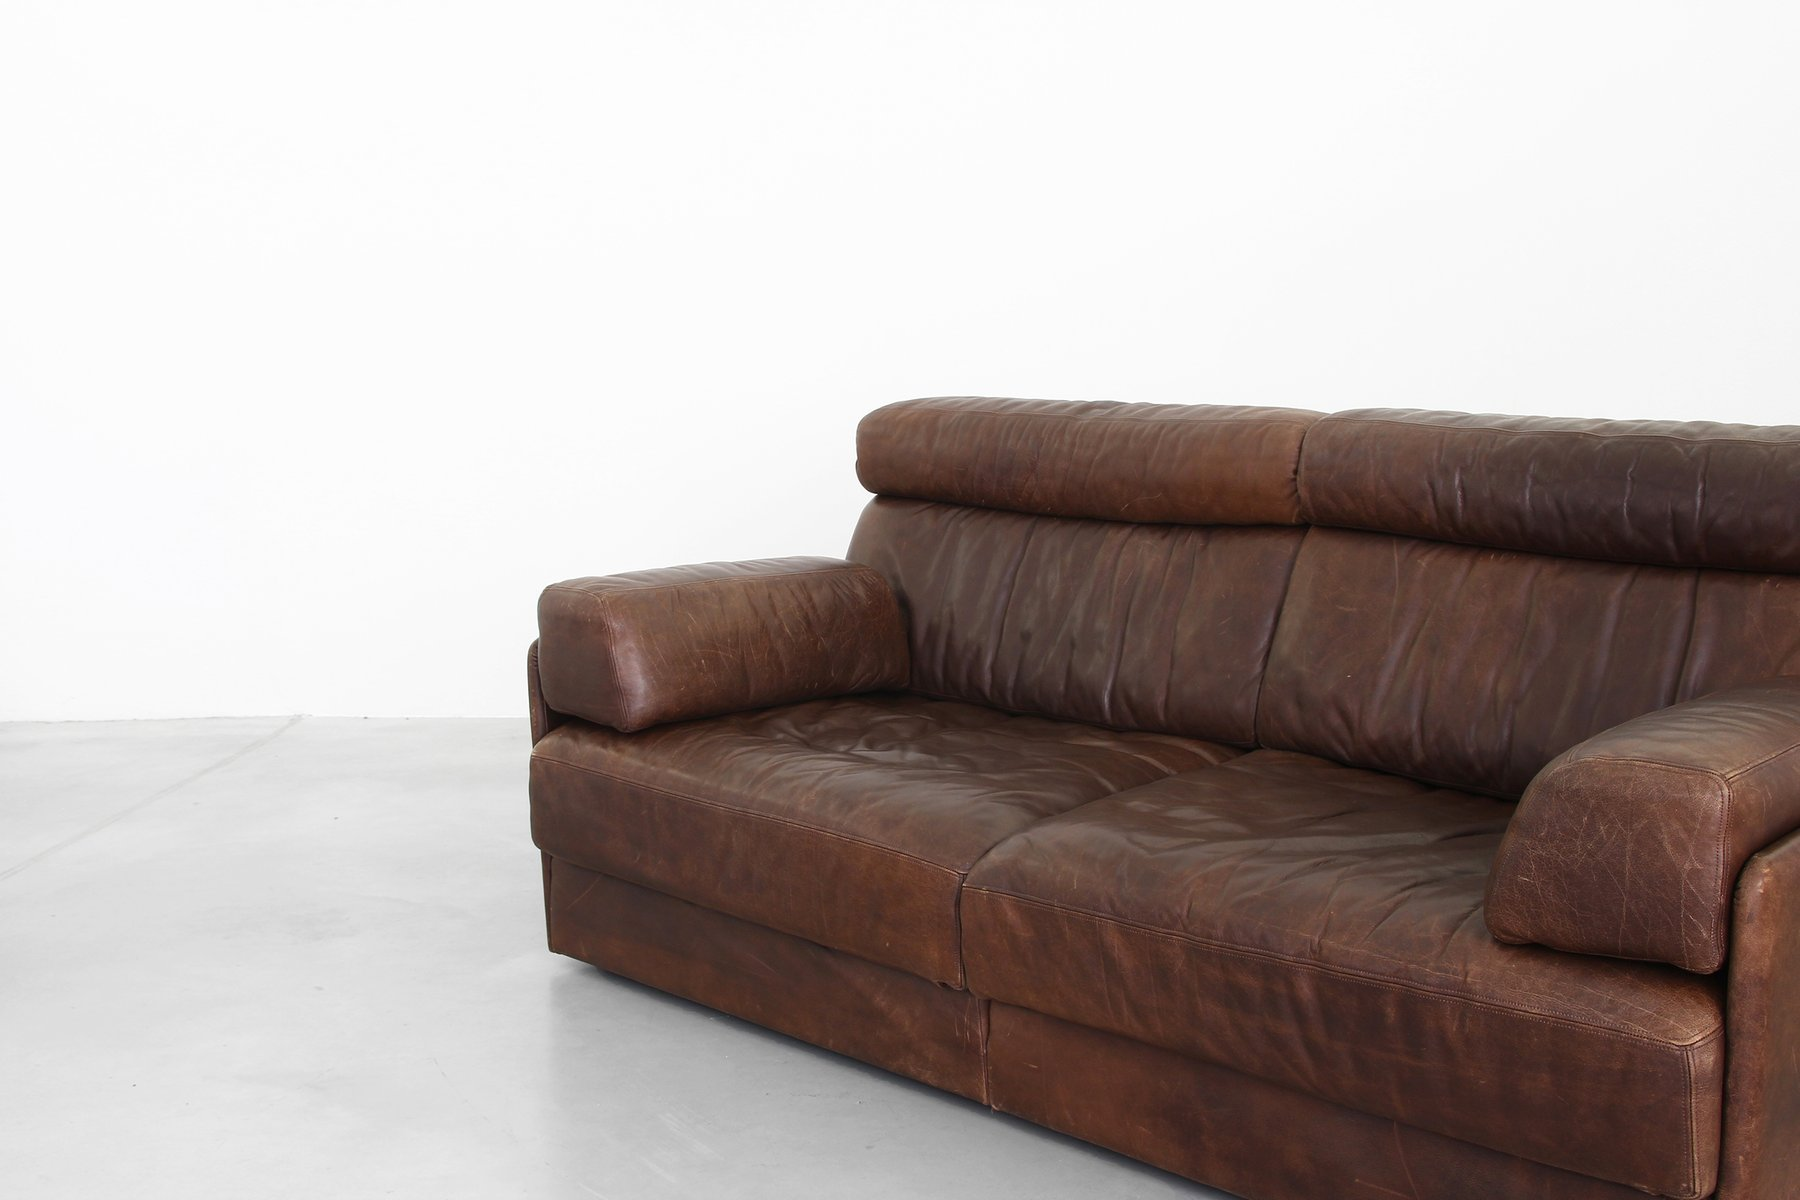 Vintage model ds 76 brown leather sofa from de sede for sale at pamono Vintage tan leather sofa